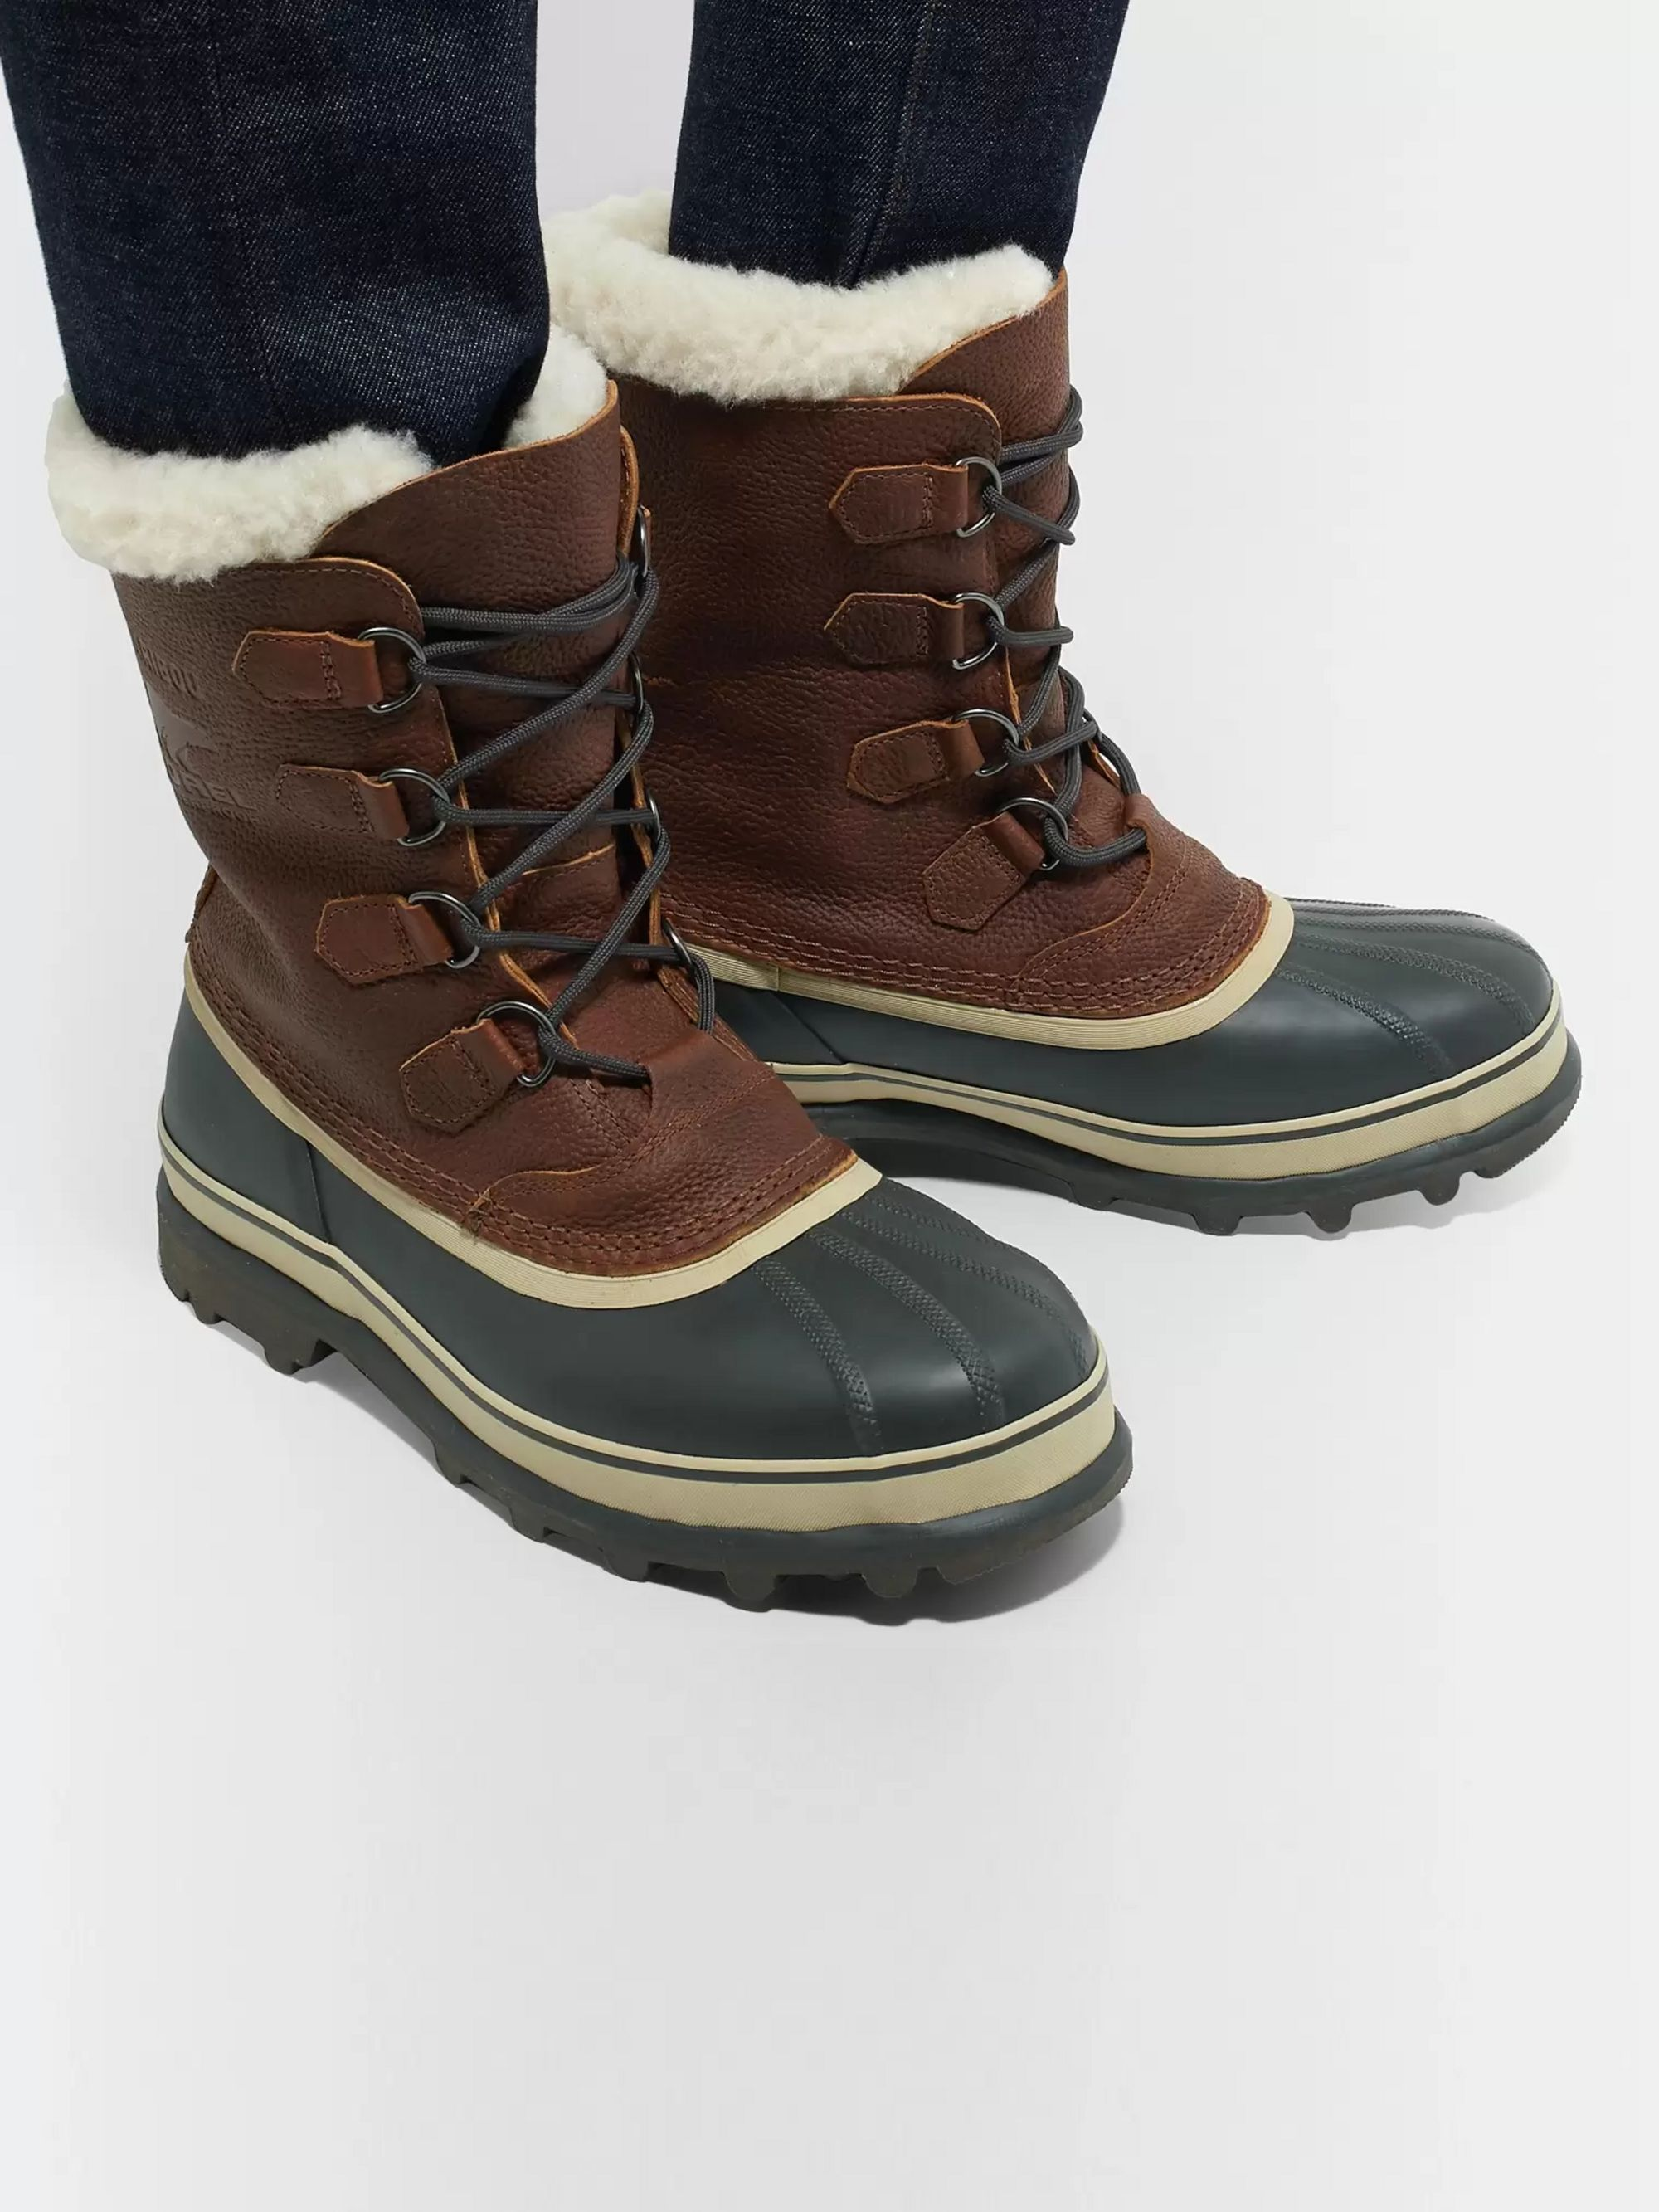 Caribou Faux Shearling Trimmed Waterproof Leather and Rubber Snow Boots